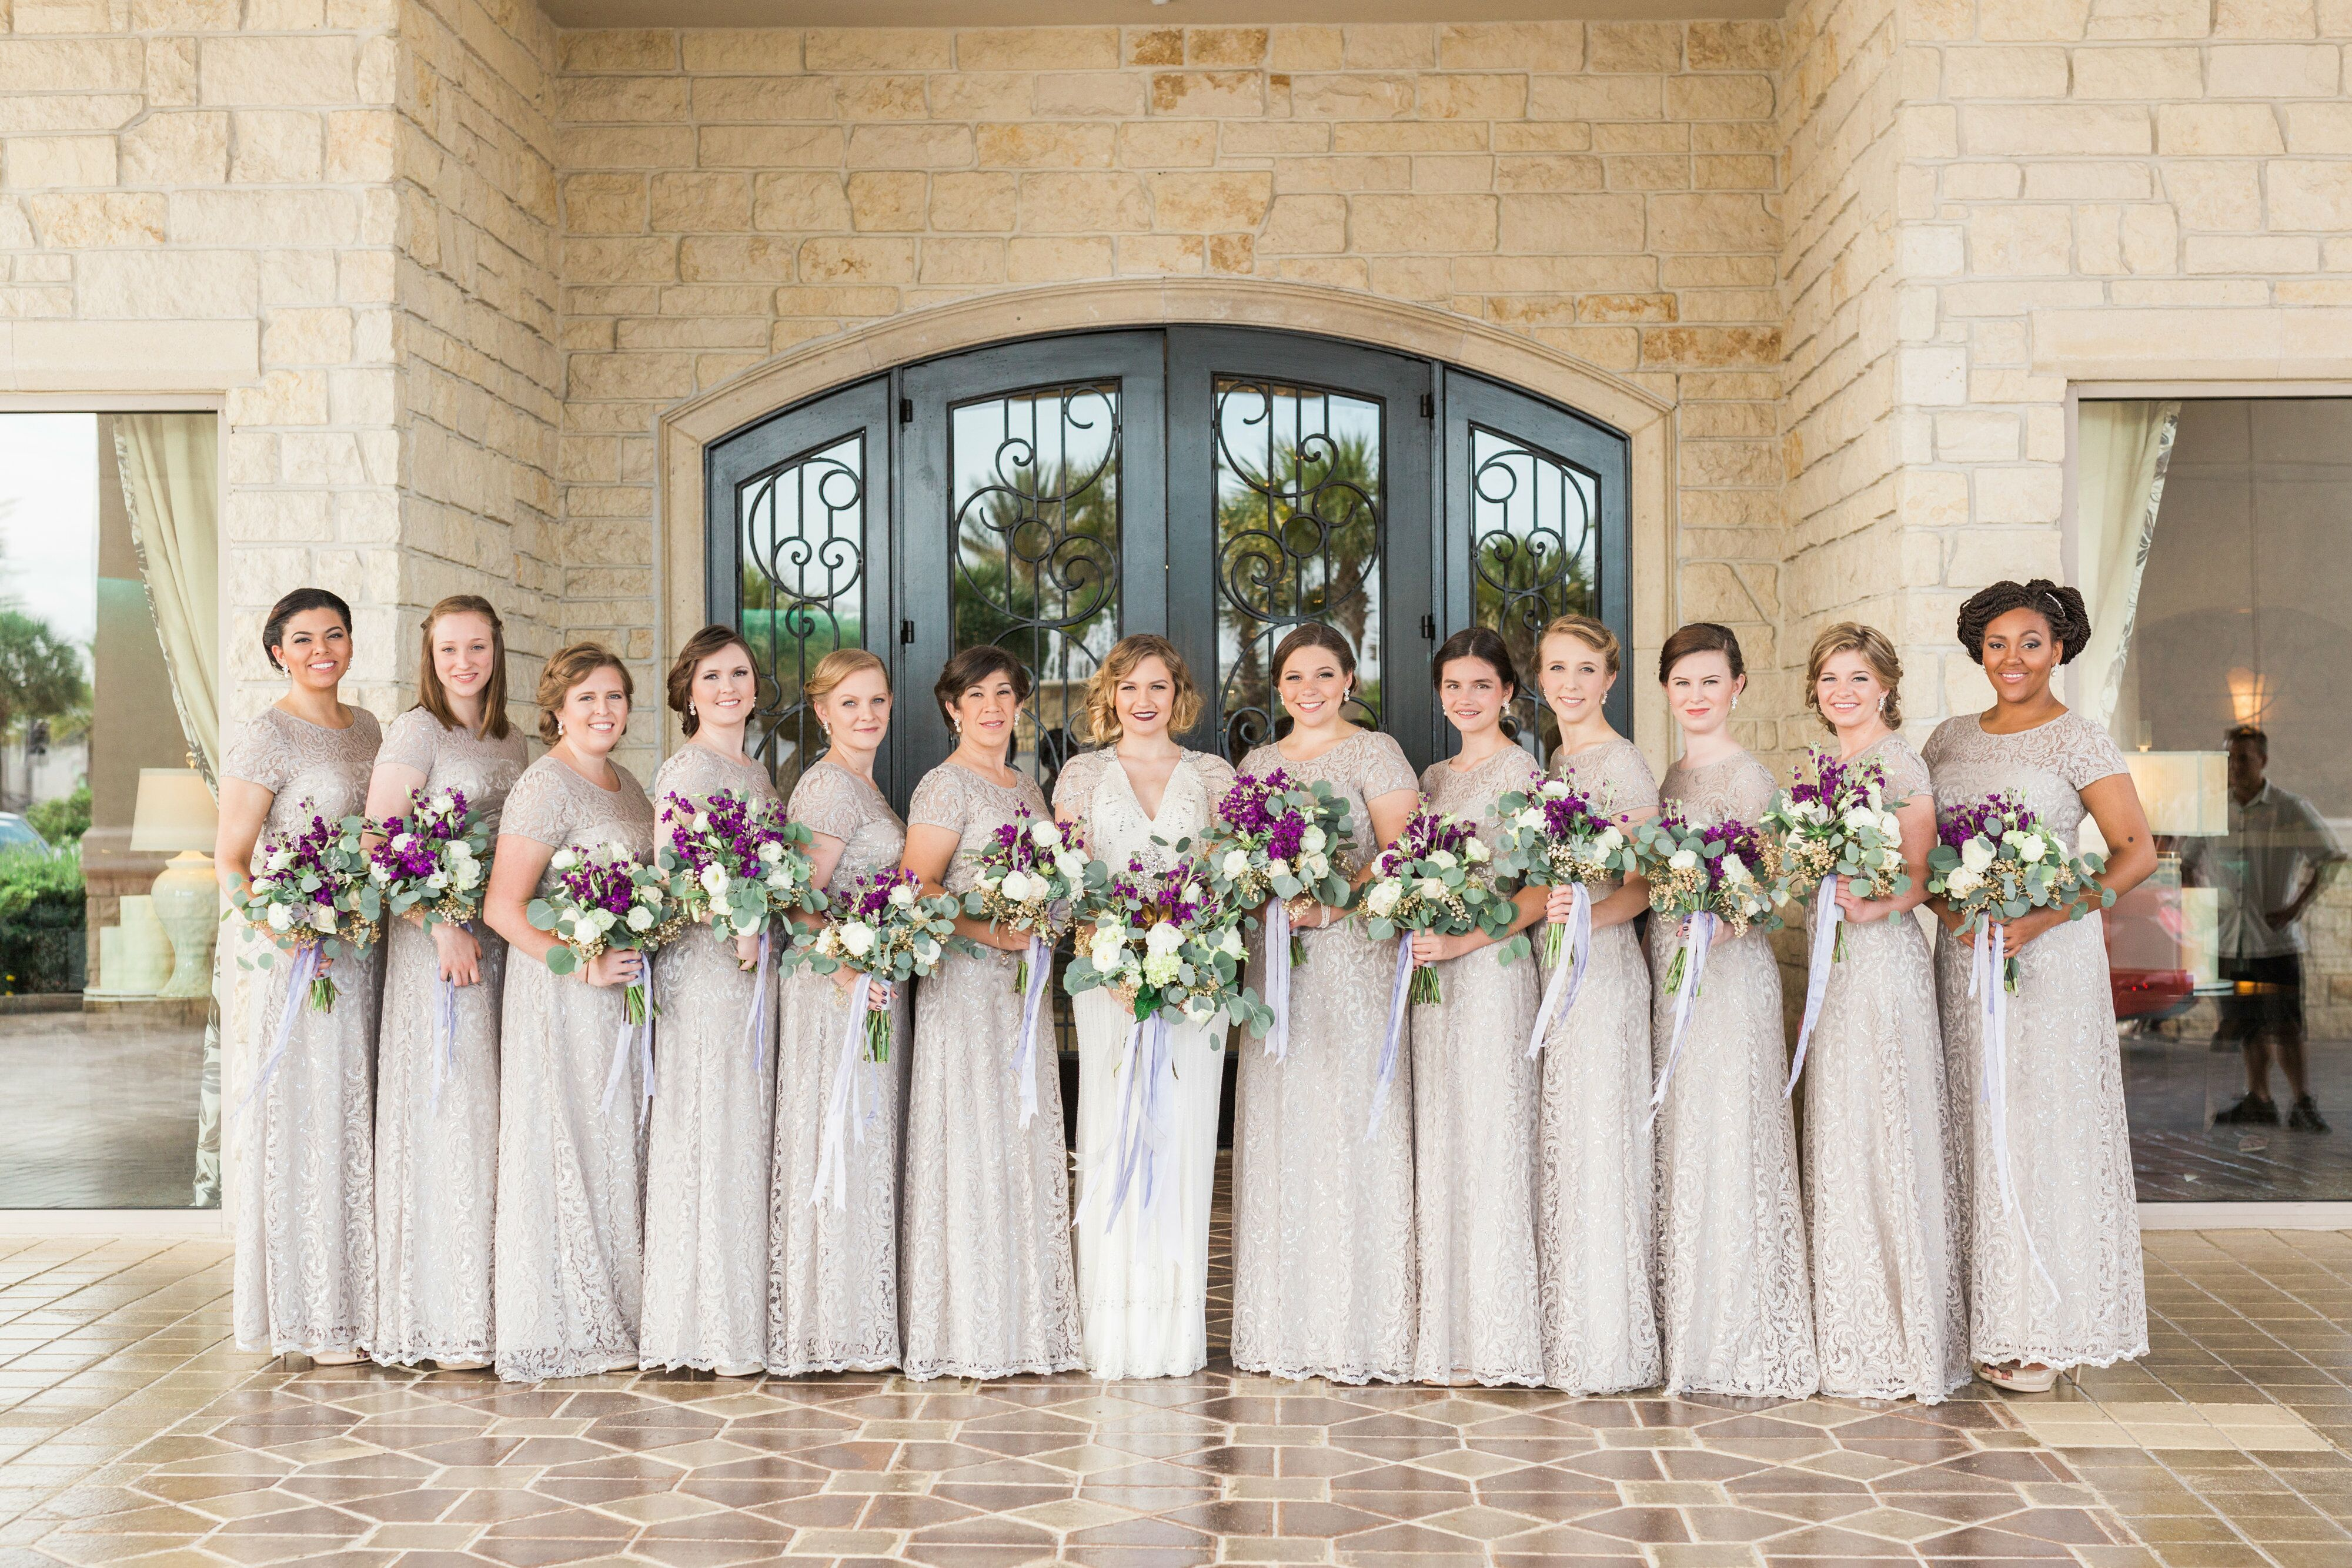 Adrianna papell neutral lace bridesmaid dresses for Neutral dresses for weddings